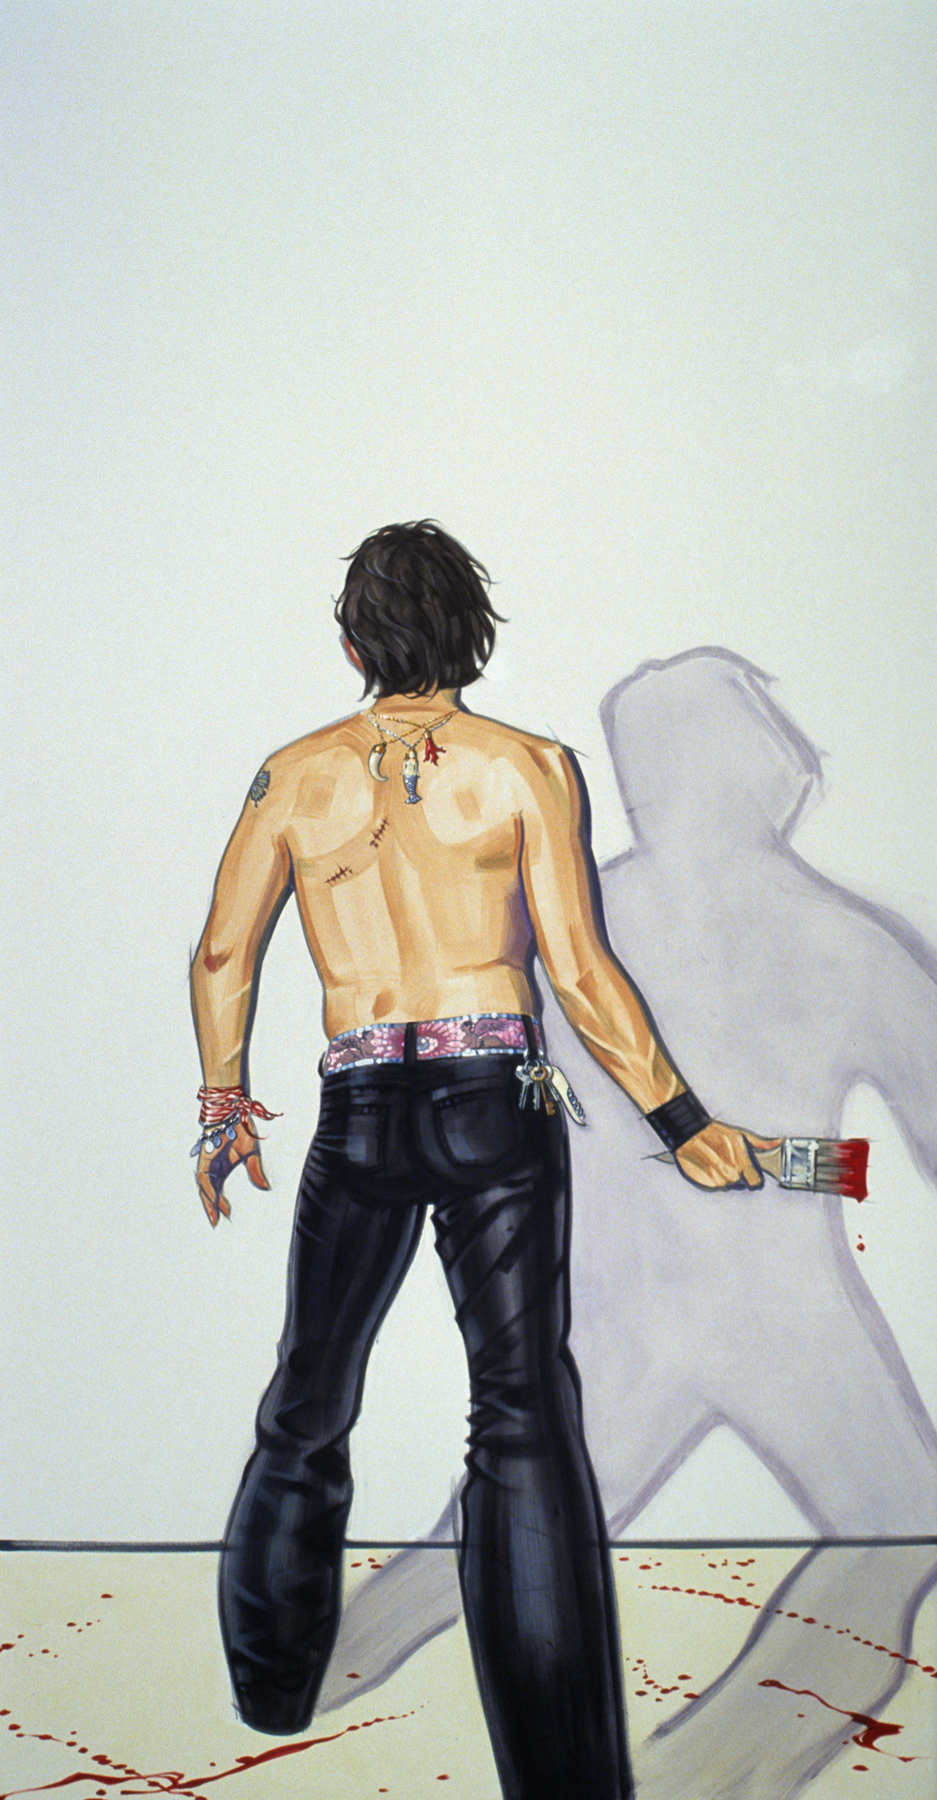 Me and the White Canvas, 2003, oil on canvas, 95 x 50 inches,  courtesy of Jolene Mechanic